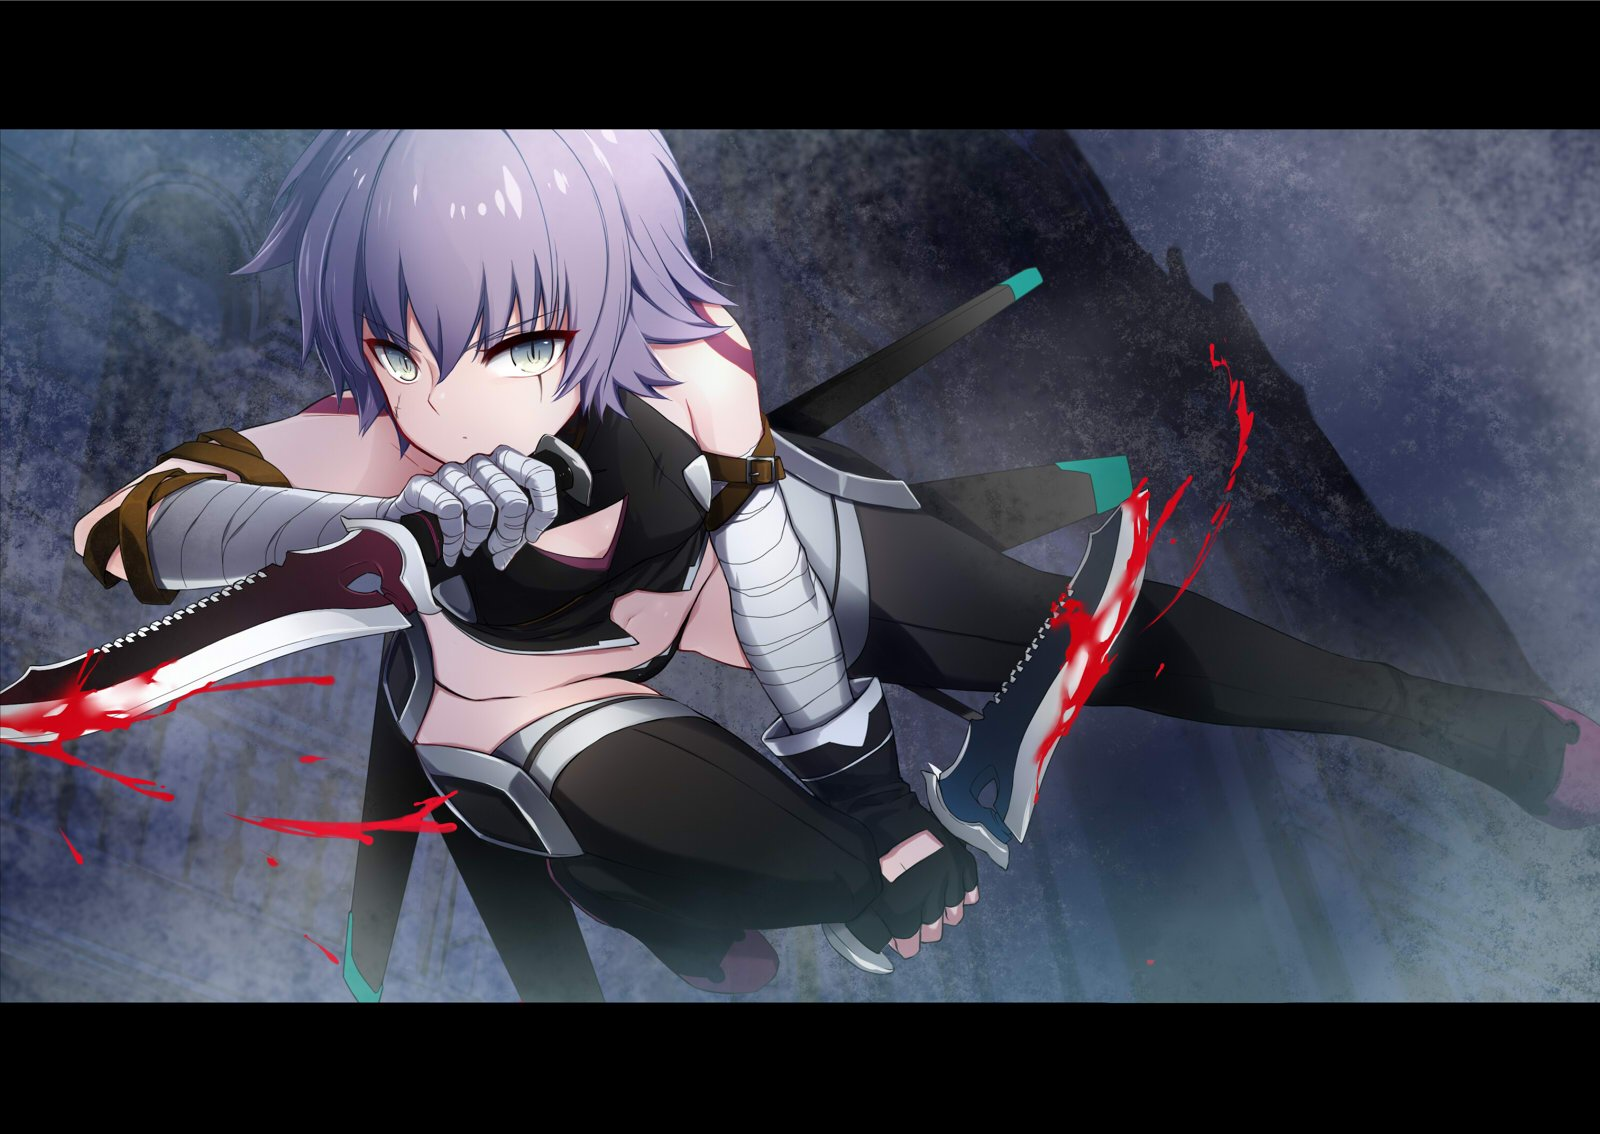 assassin  fate apocrypha  bandage blood fate apocrypha fate stay night gray eyes knife purple